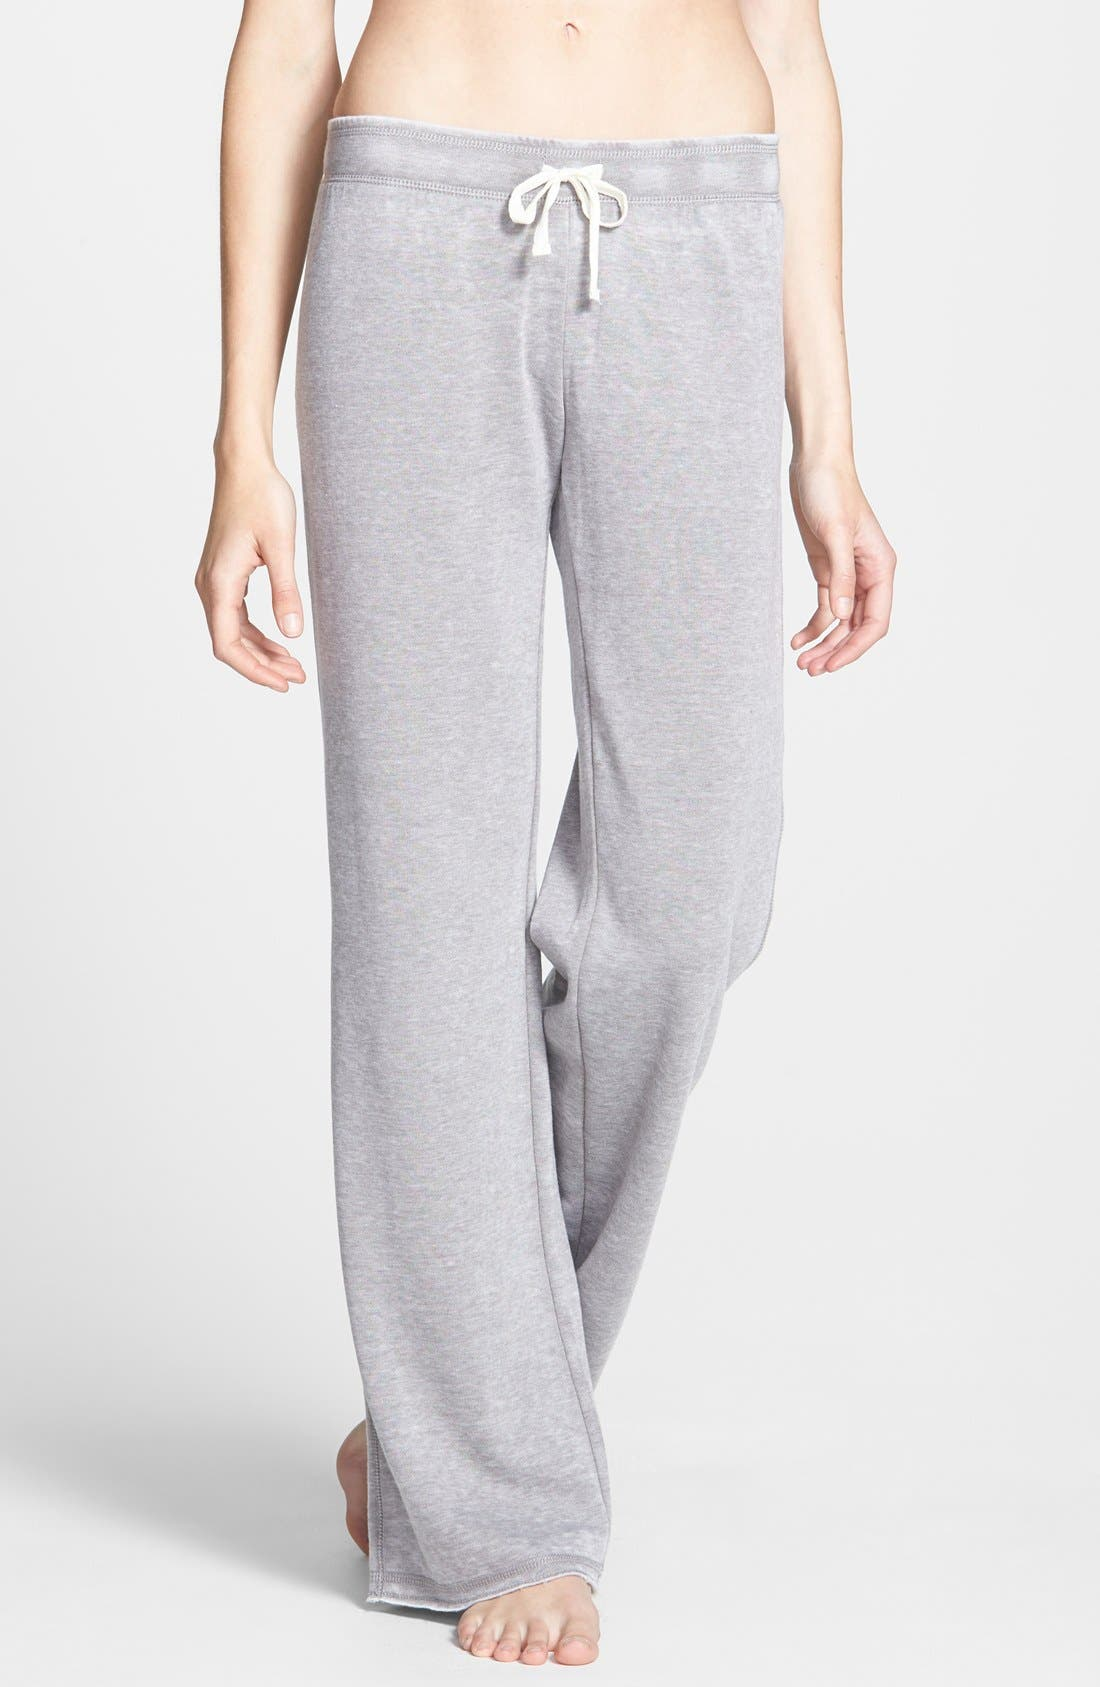 Alternate Image 1 Selected - BP. Undercover 'Gym Class' Sweatpants (Juniors) (Online Only)